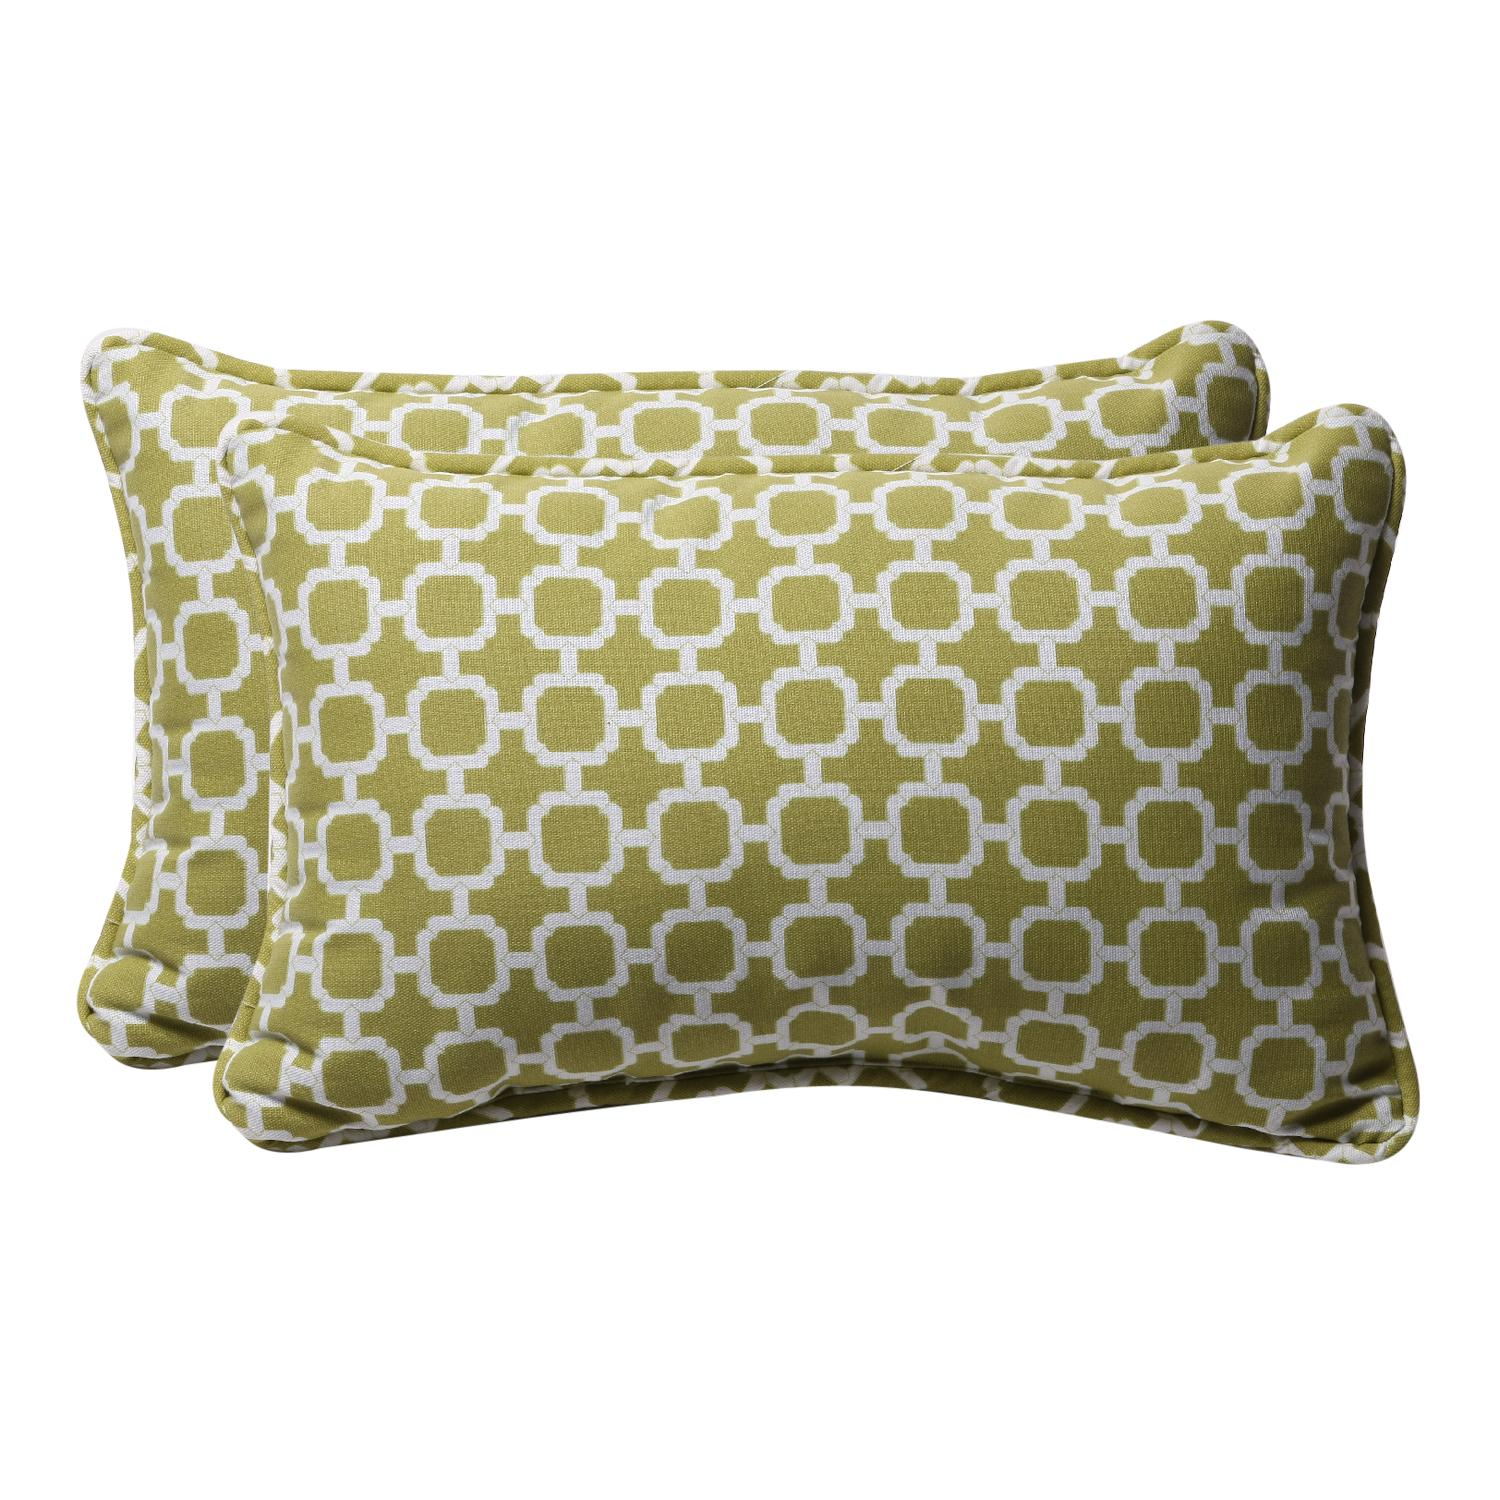 Pack of 2 Eco-Friendly Rectangular Lime Mosaic Outdoor Throw Pillows 18.5""